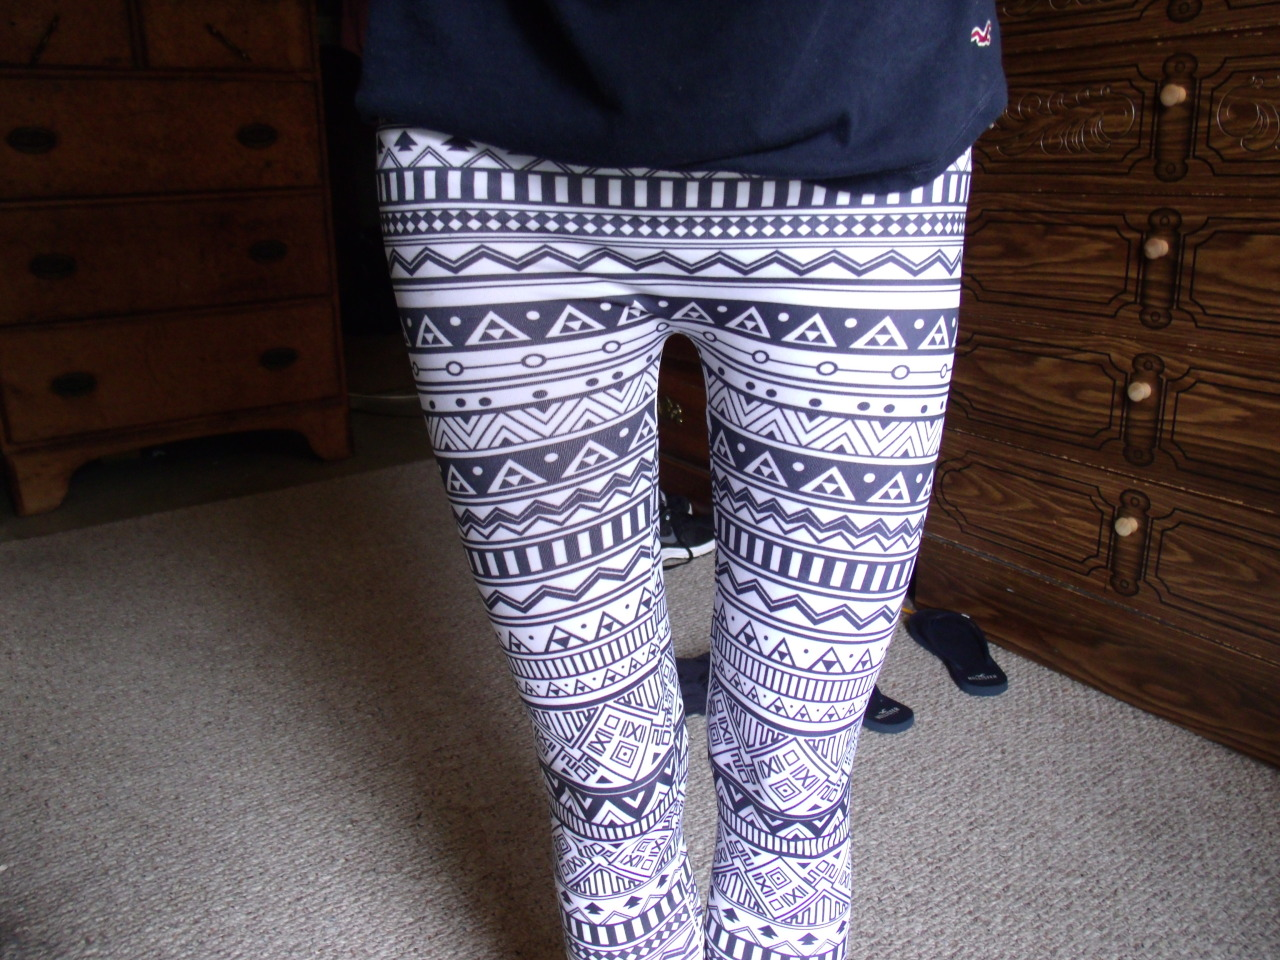 preachniam:  tights yay c: also i know someone is going to make a remark about a thigh gap but that's not the point of this picture so pls don't.